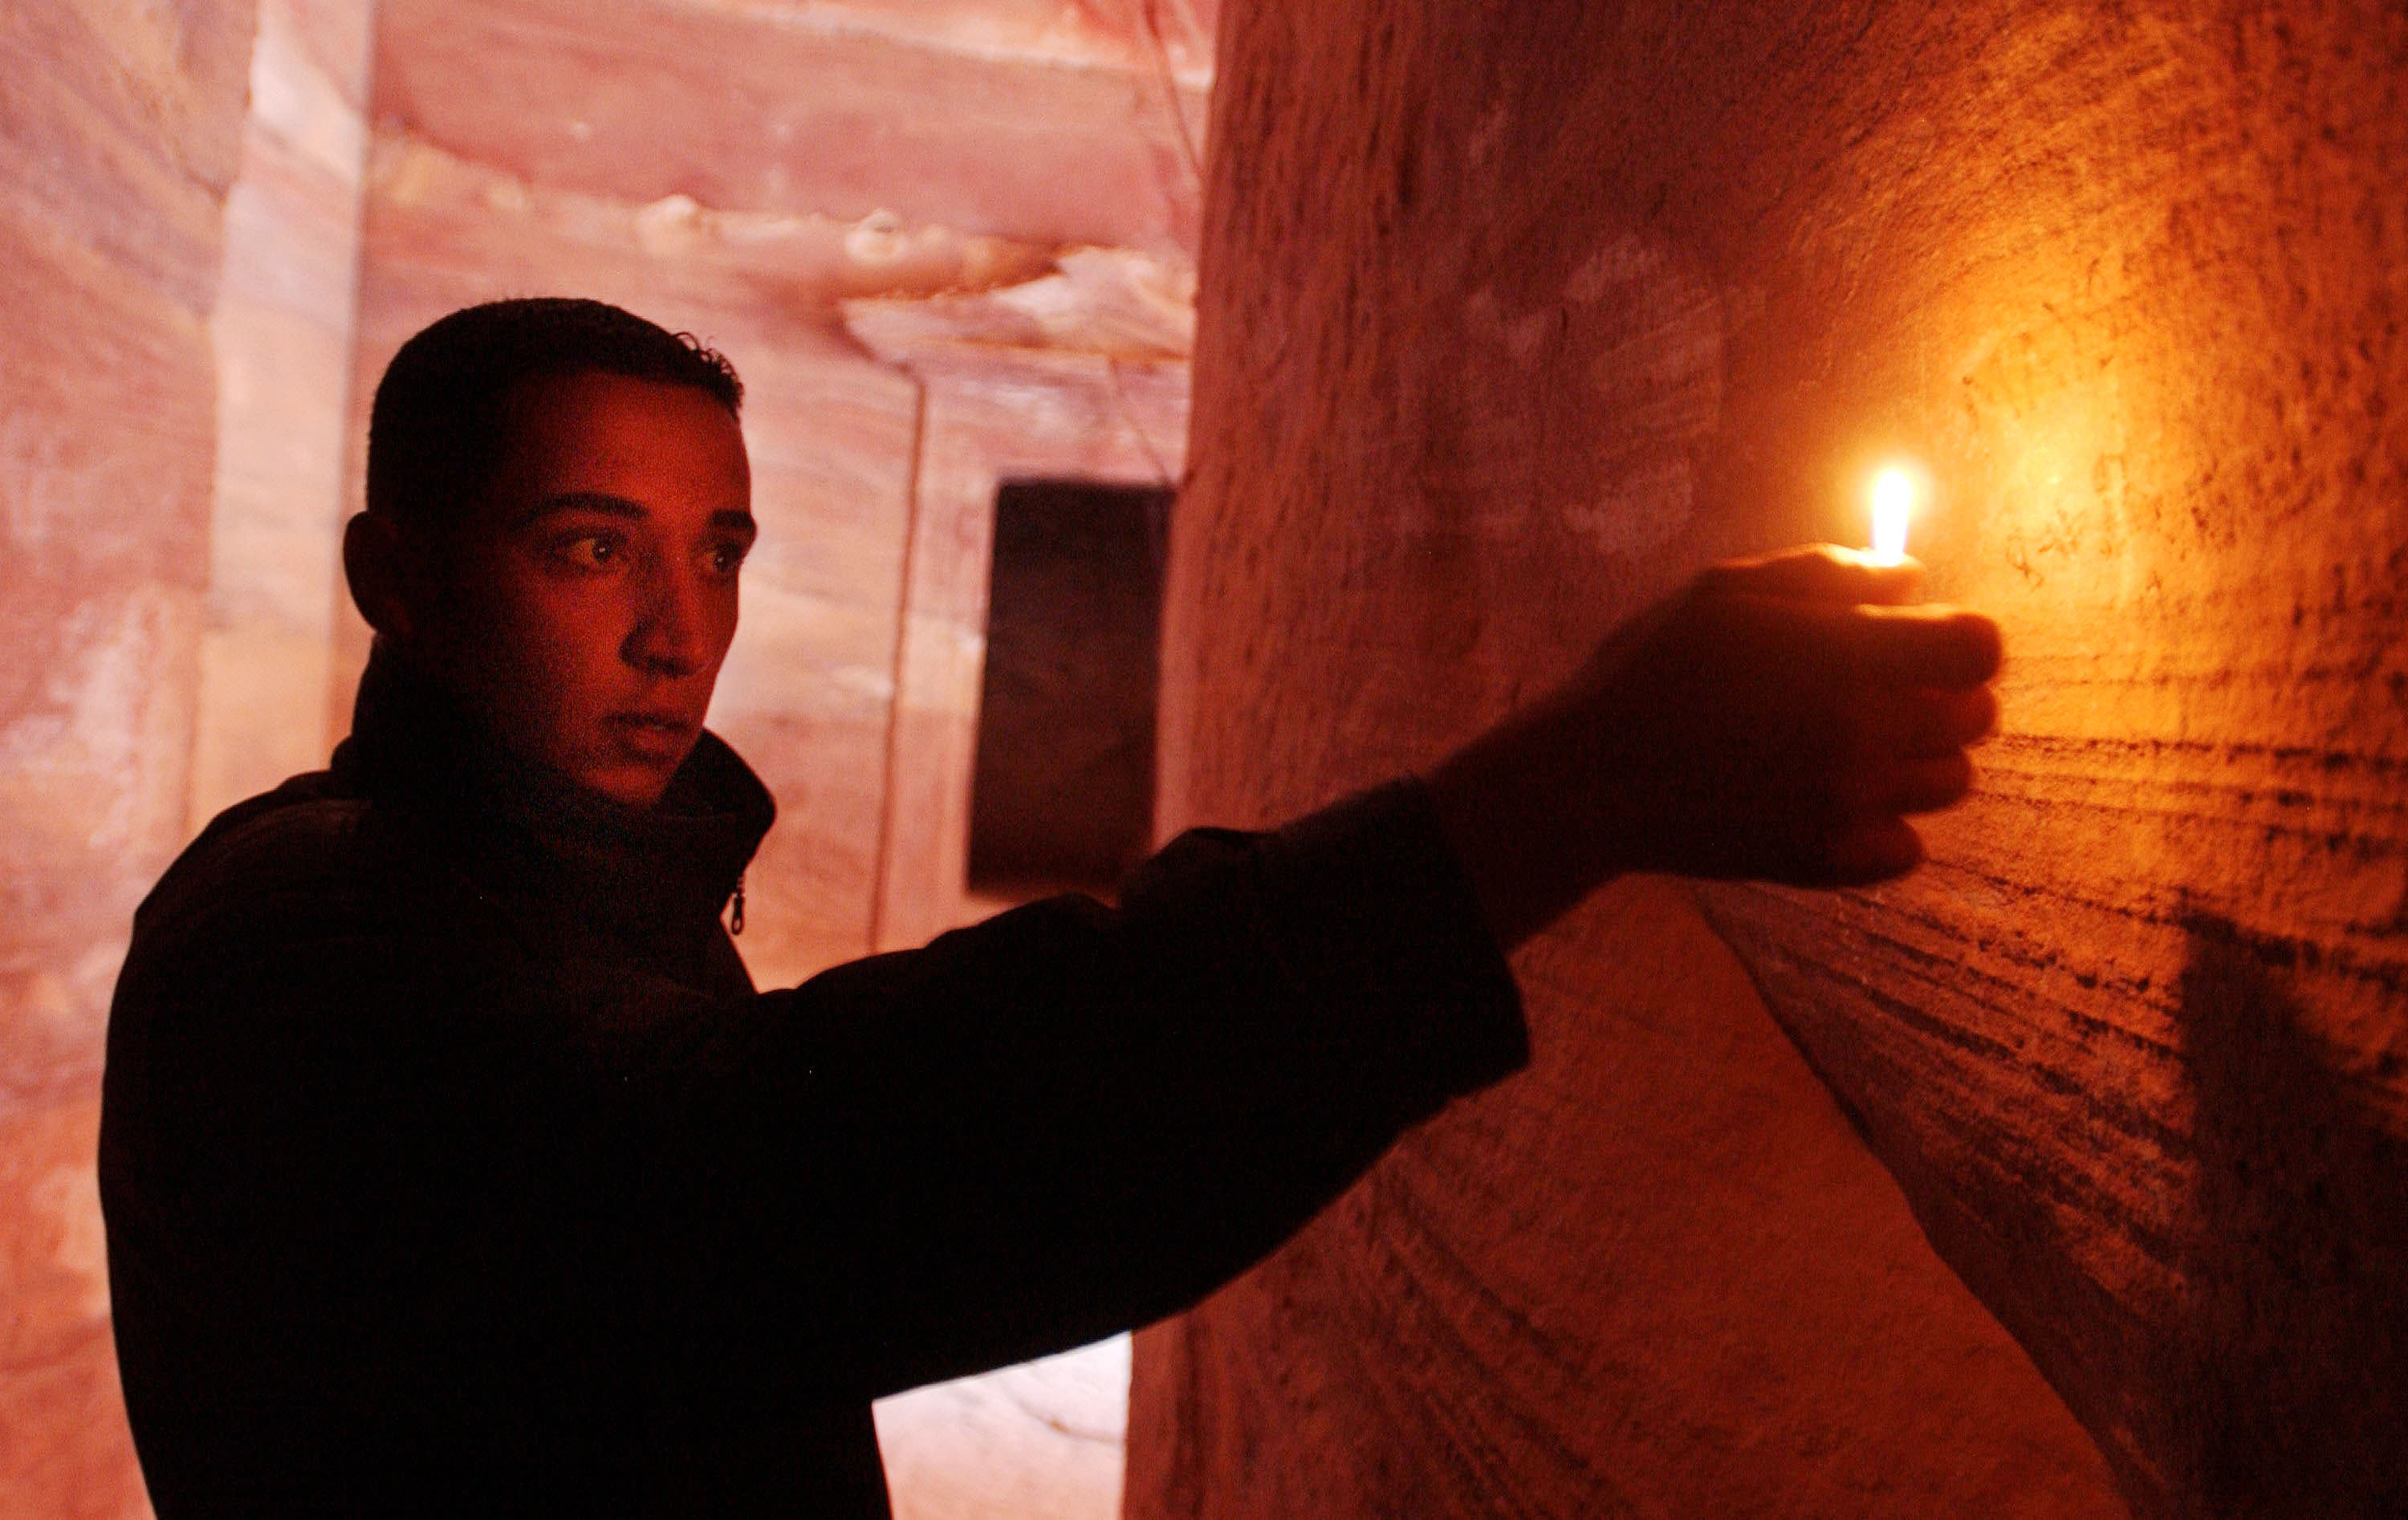 Advanced genetic profiling and archaeological theory are shining a light on humanity's origins as Arab- Shown for illustrative purposes.